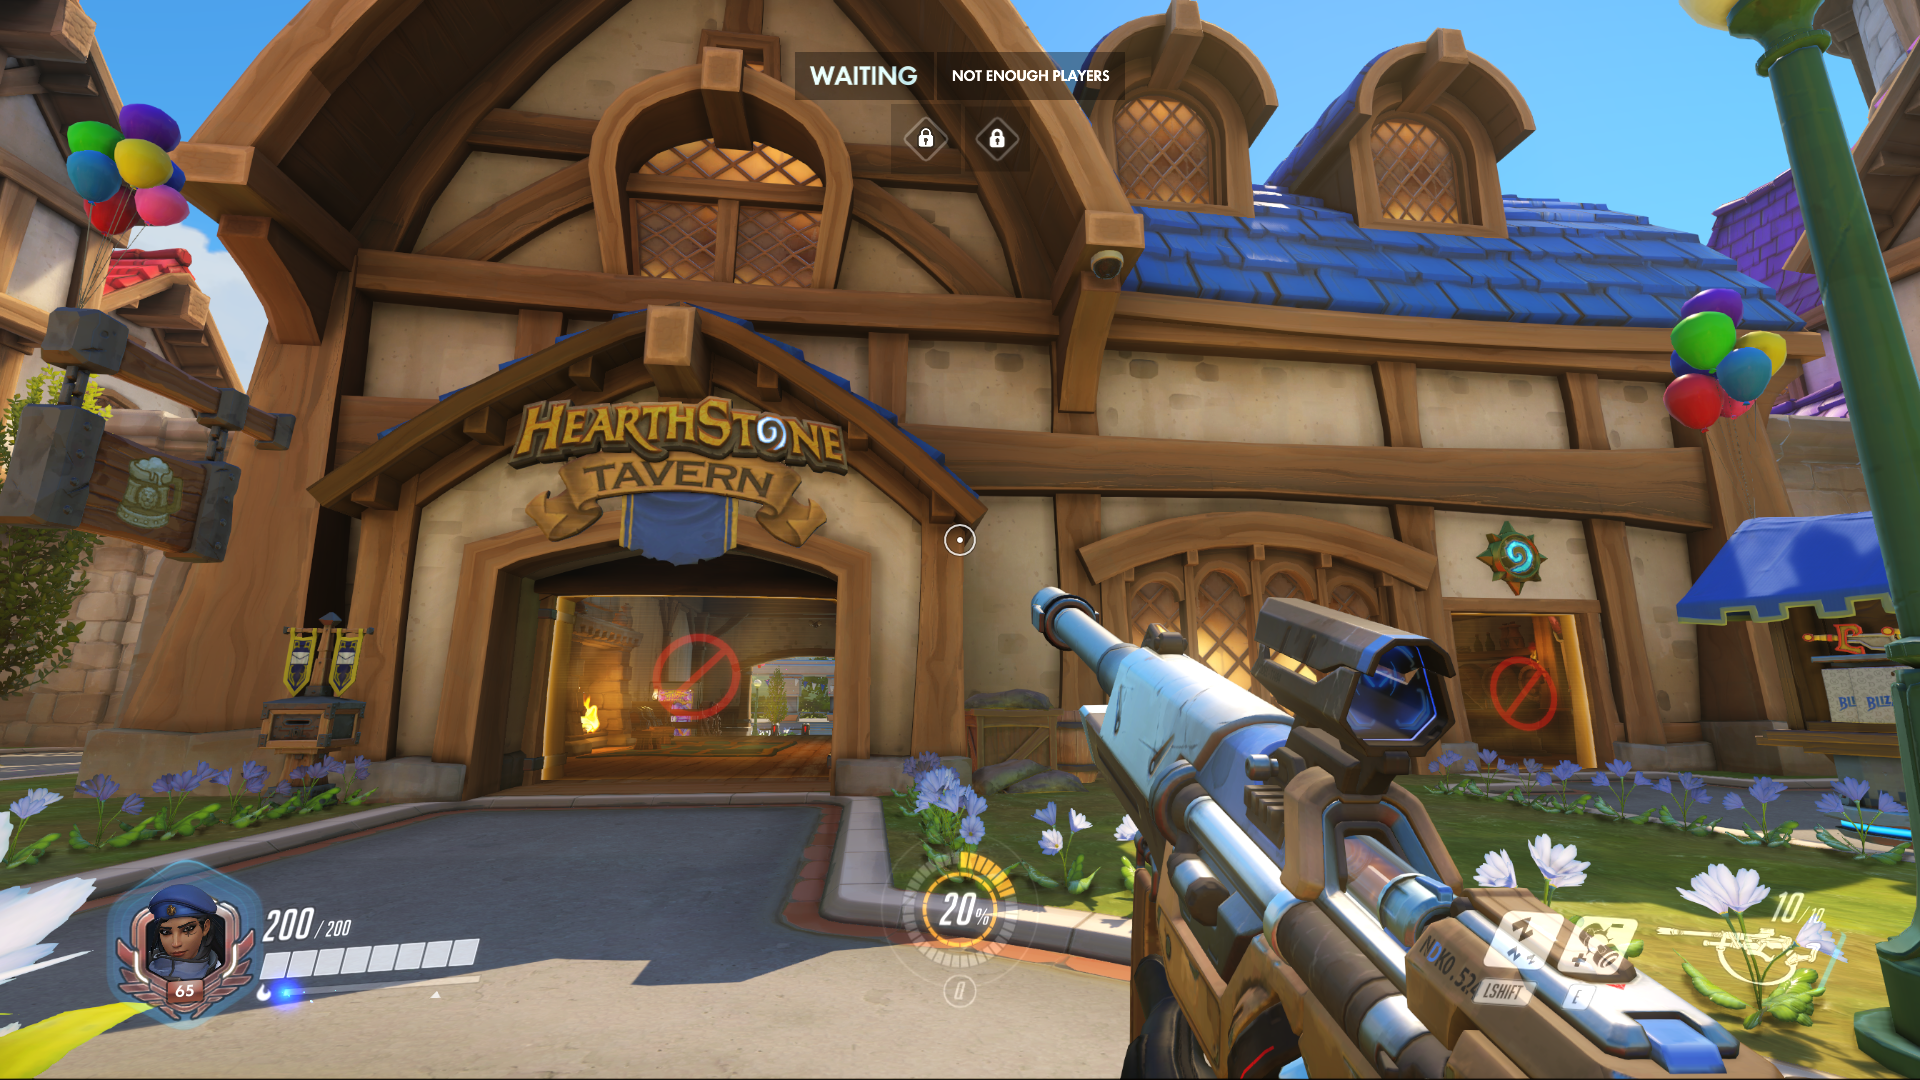 Tracking The References In Blizzard World Overwatch S New Map